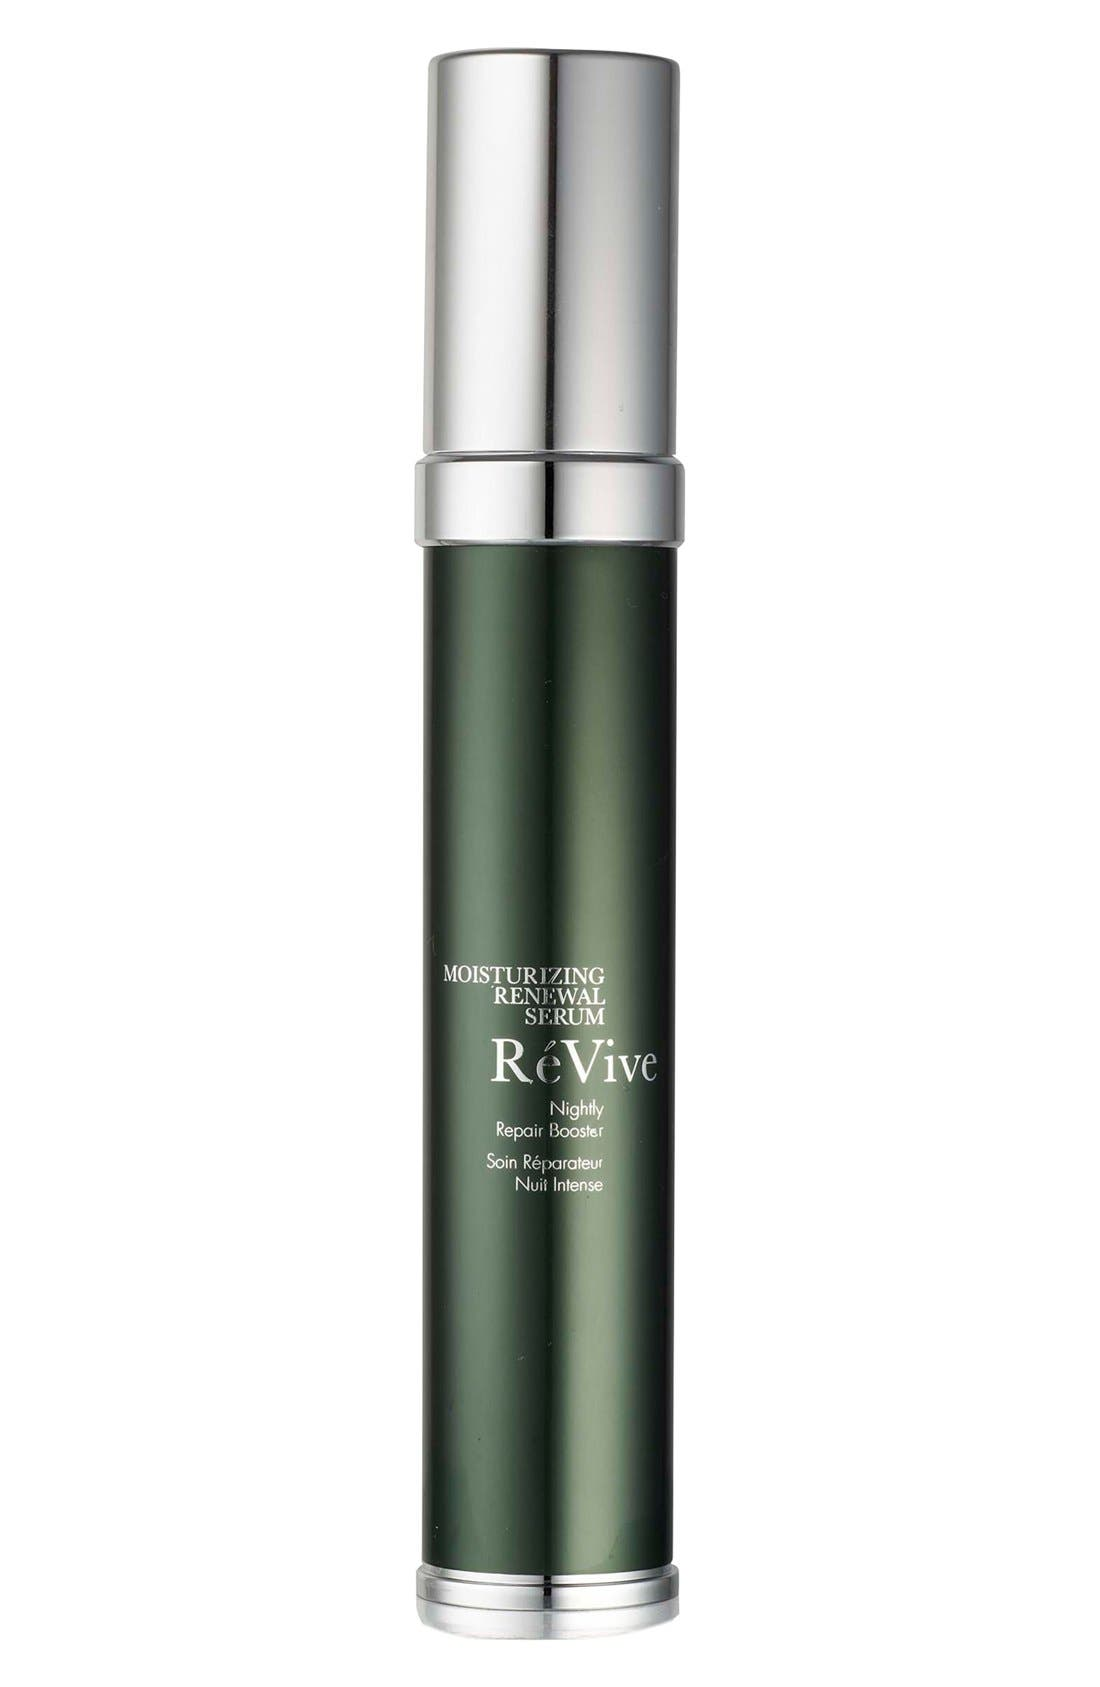 RéVive® Moisturizing Renewal Serum